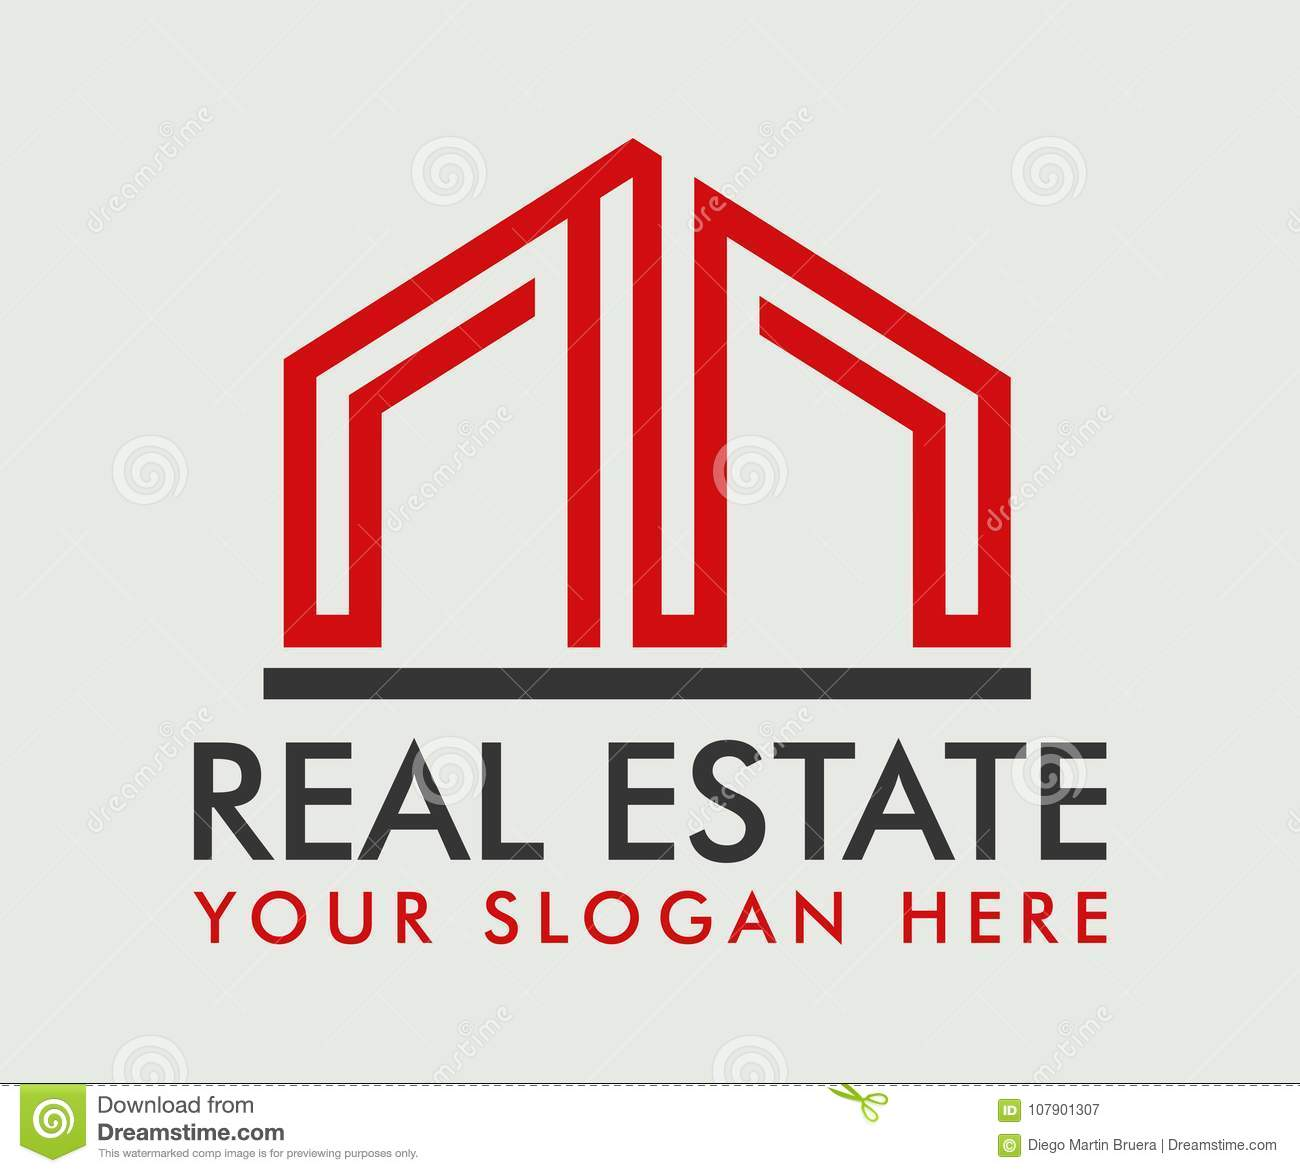 Real Estate, de Bouw, Bouw en Architectuur Logo Vector Design